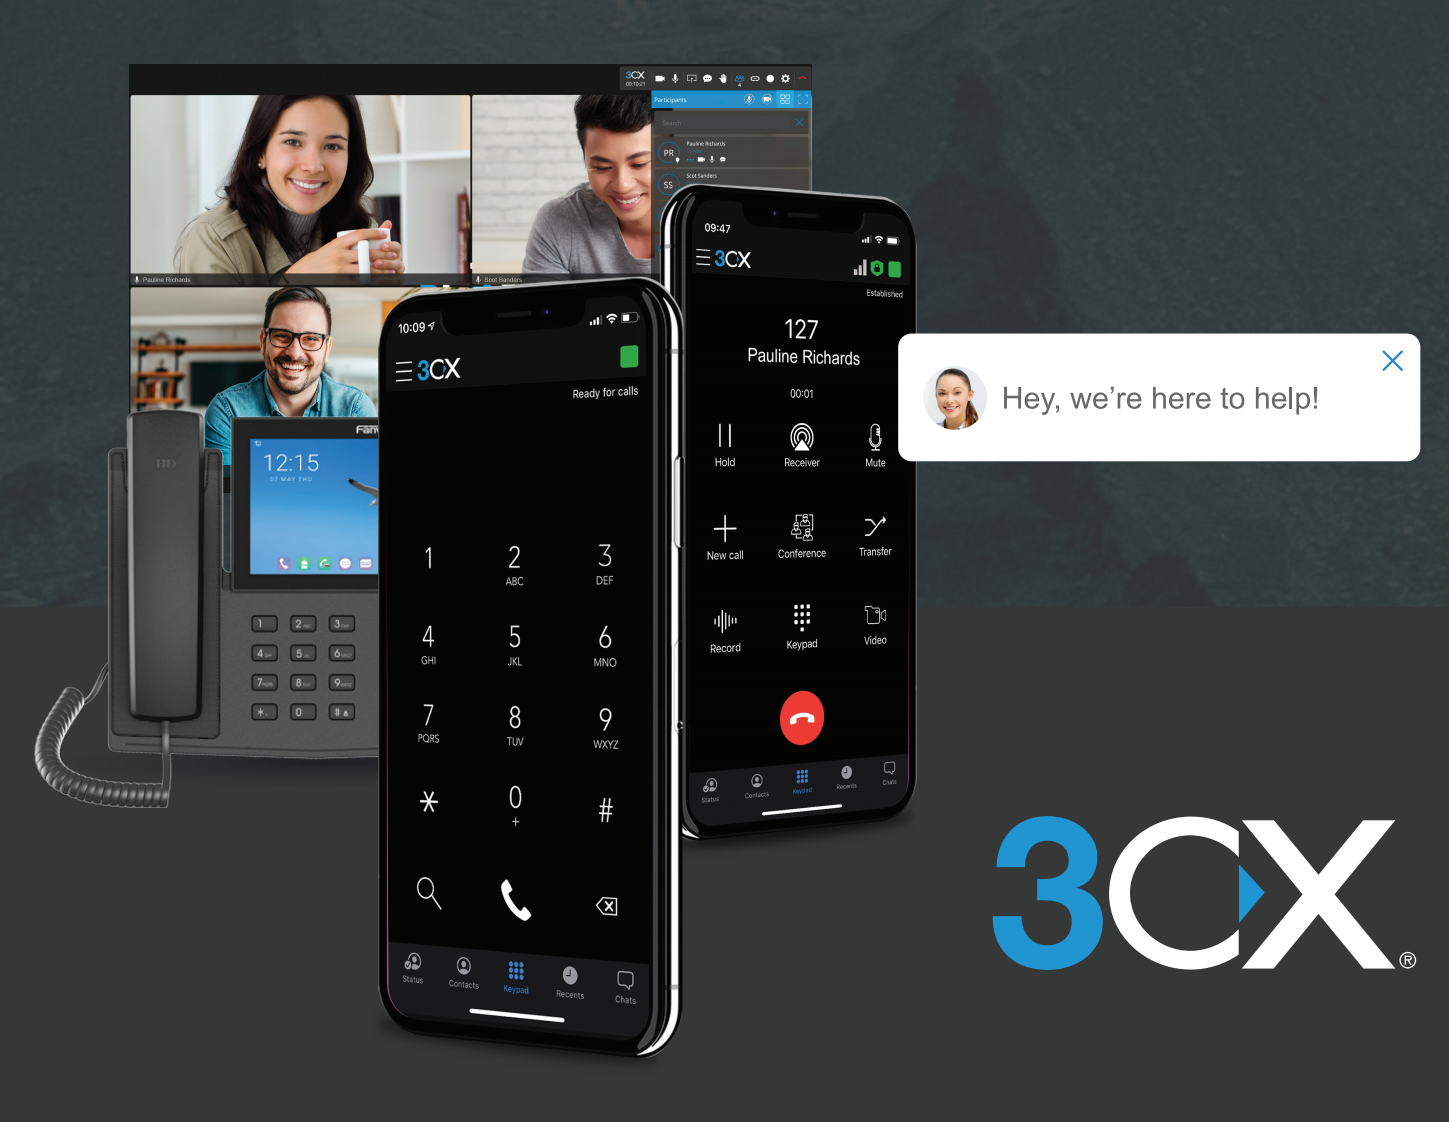 3CX VoIP Phone System Image